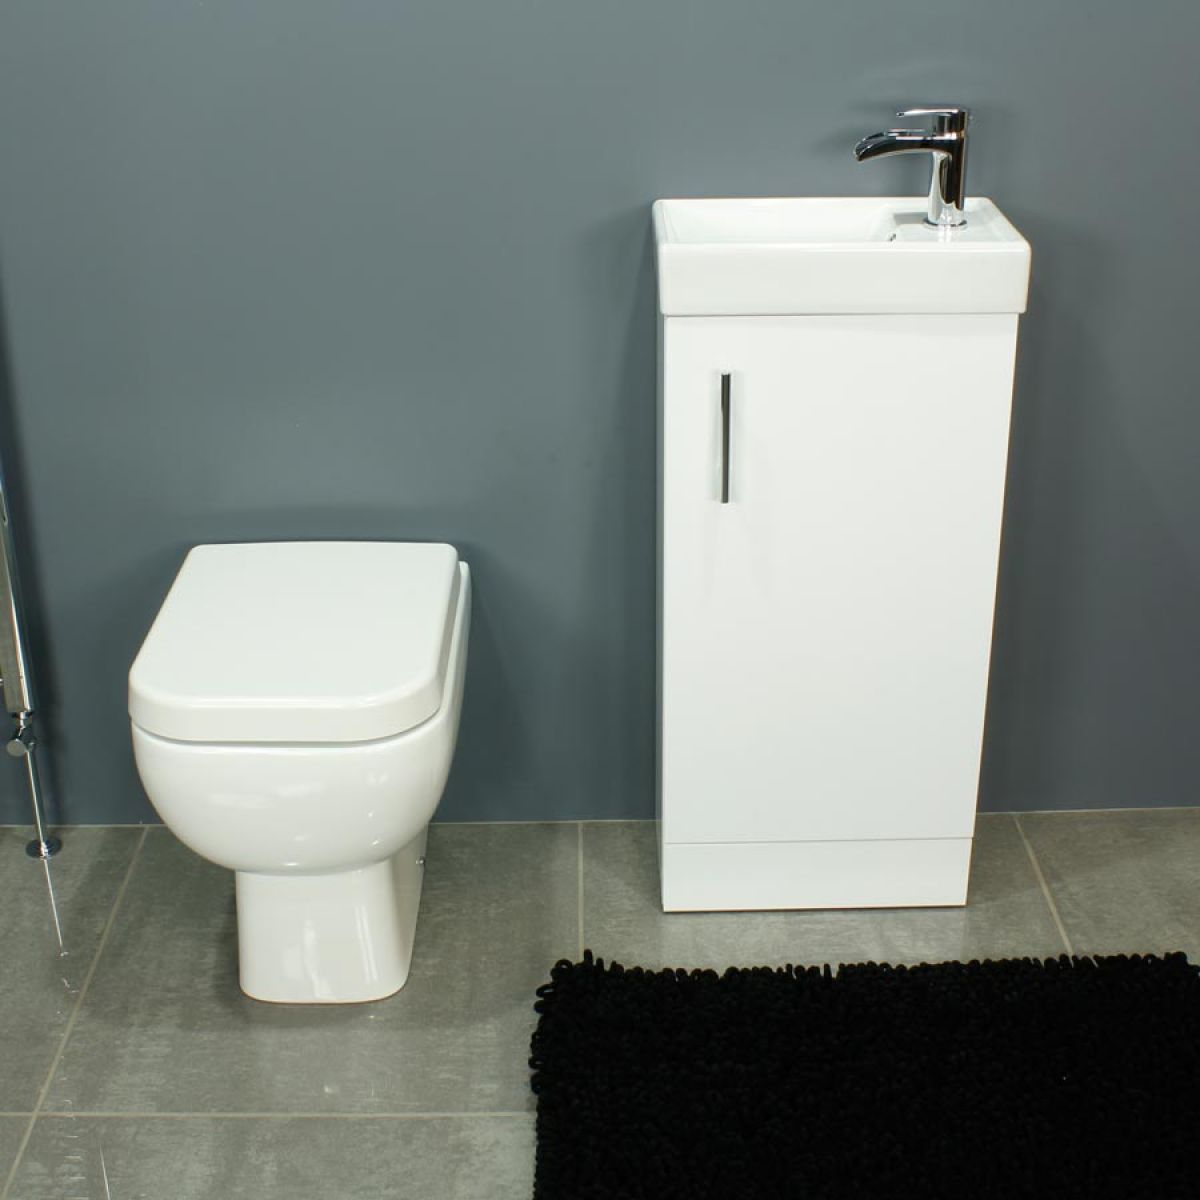 RAK Series 600 Back To Wall Toilet and 400 Series Gloss White Vanity Unit Front